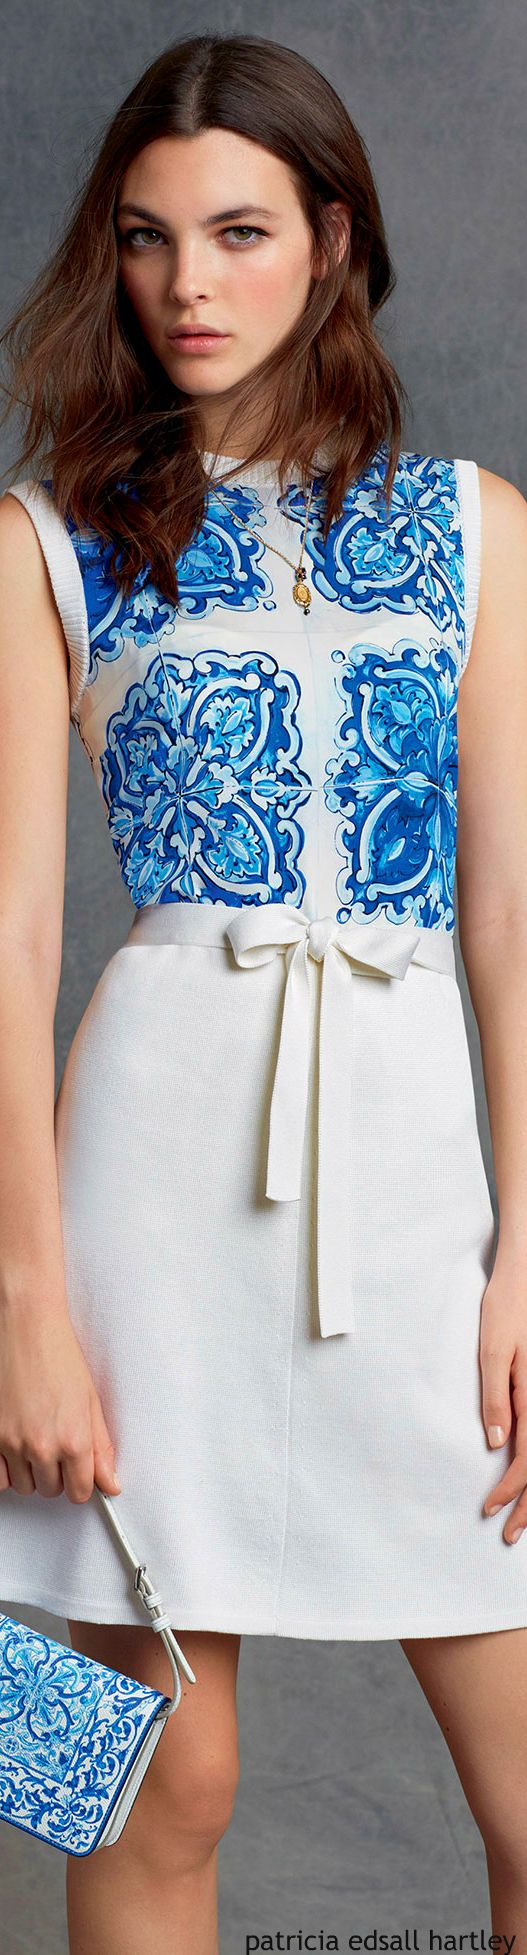 20 Best Patricia Avendano Images On Pinterest High Fashion Party Kemeja Lavender Contrast Multicolor Shop At Velvet Stitch Fix I Love Blue And White Together This Is Beautiful Dolce